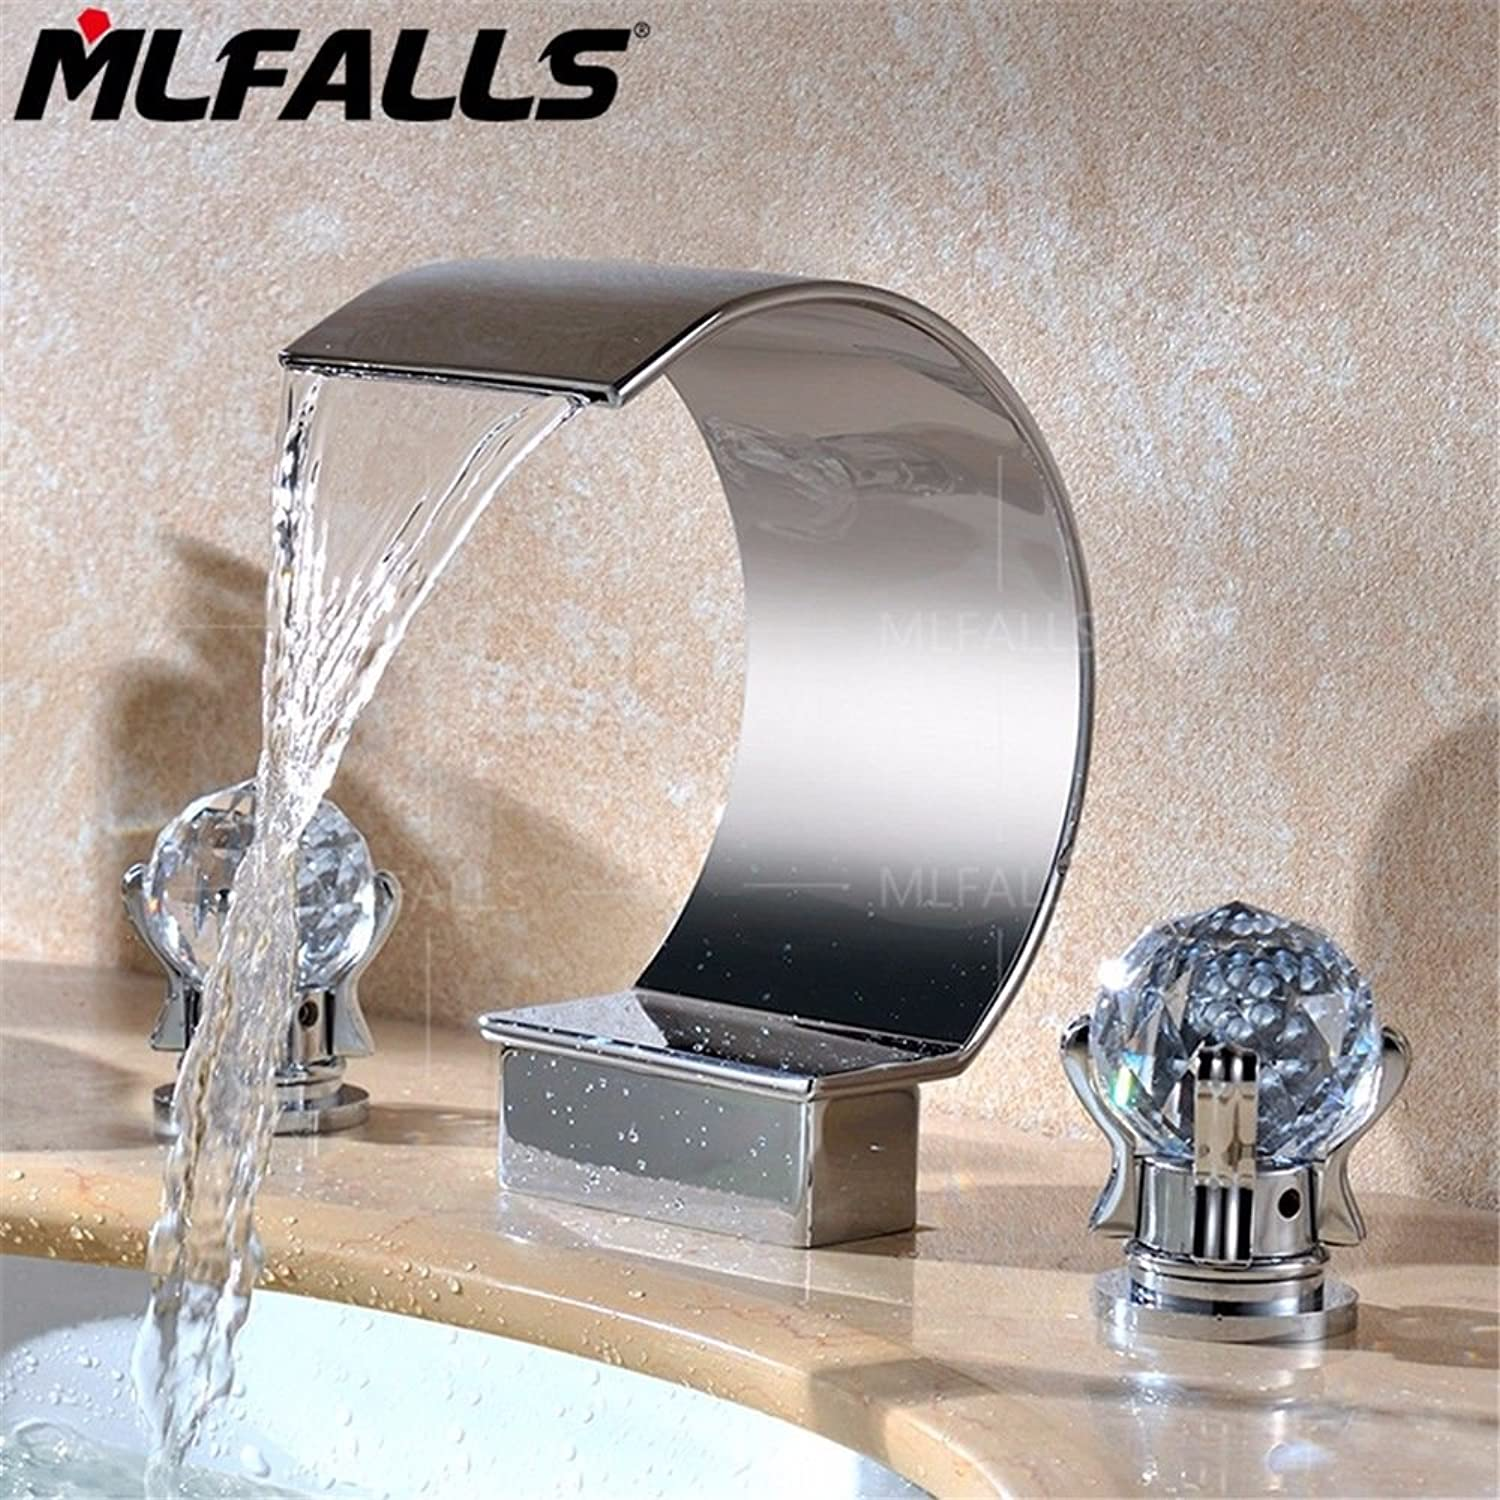 Lalaky Taps Faucet Kitchen Mixer Sink Waterfall Bathroom Mixer Basin Mixer Tap for Kitchen Bathroom and Washroom Silver Brass Chrome Crystal Double Handle Three Holes